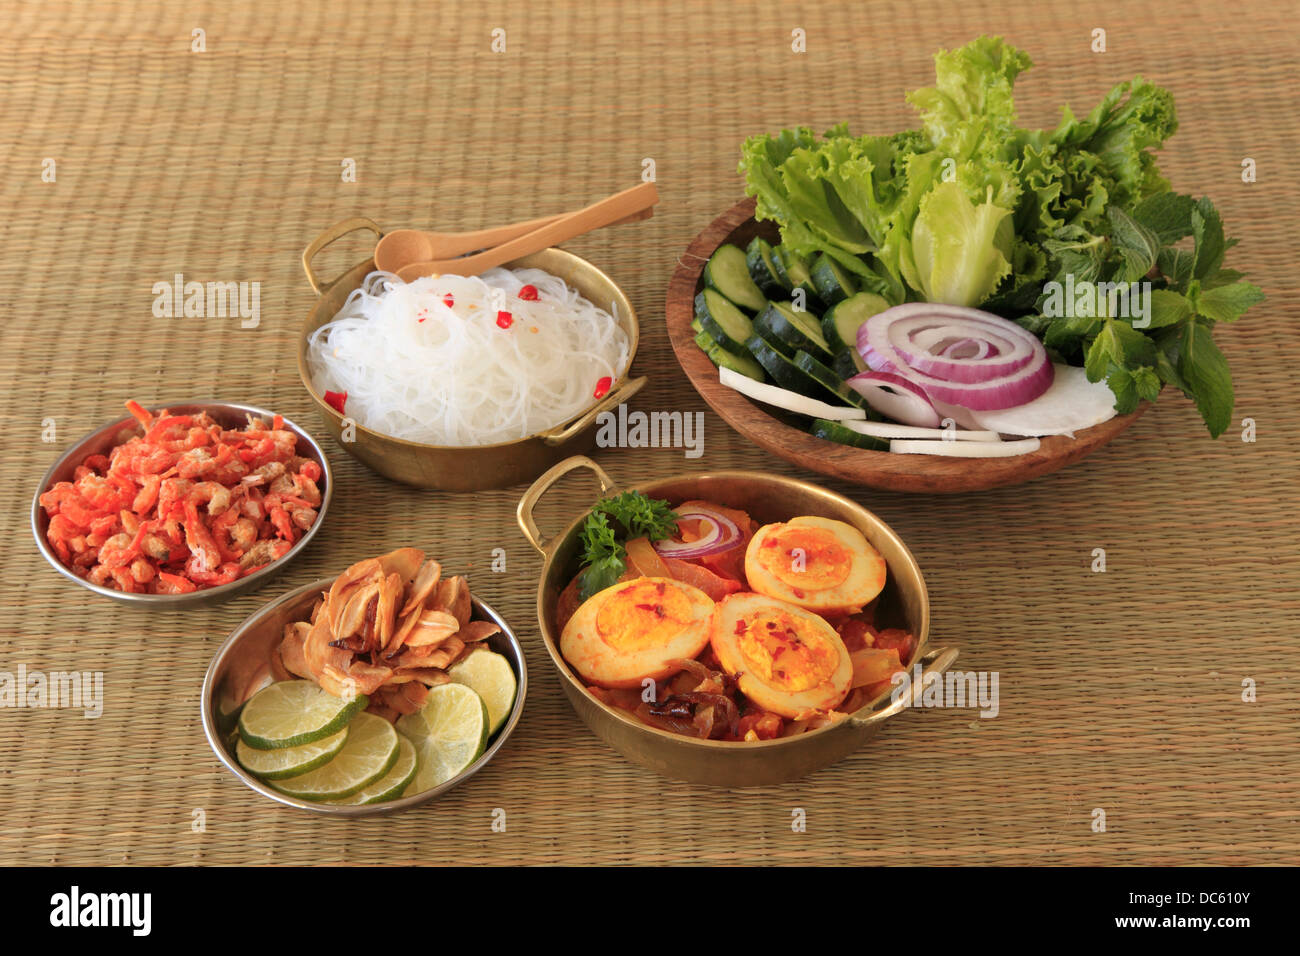 Burmese Egg Curry Rice Noodles Salad Side Dishes Stock